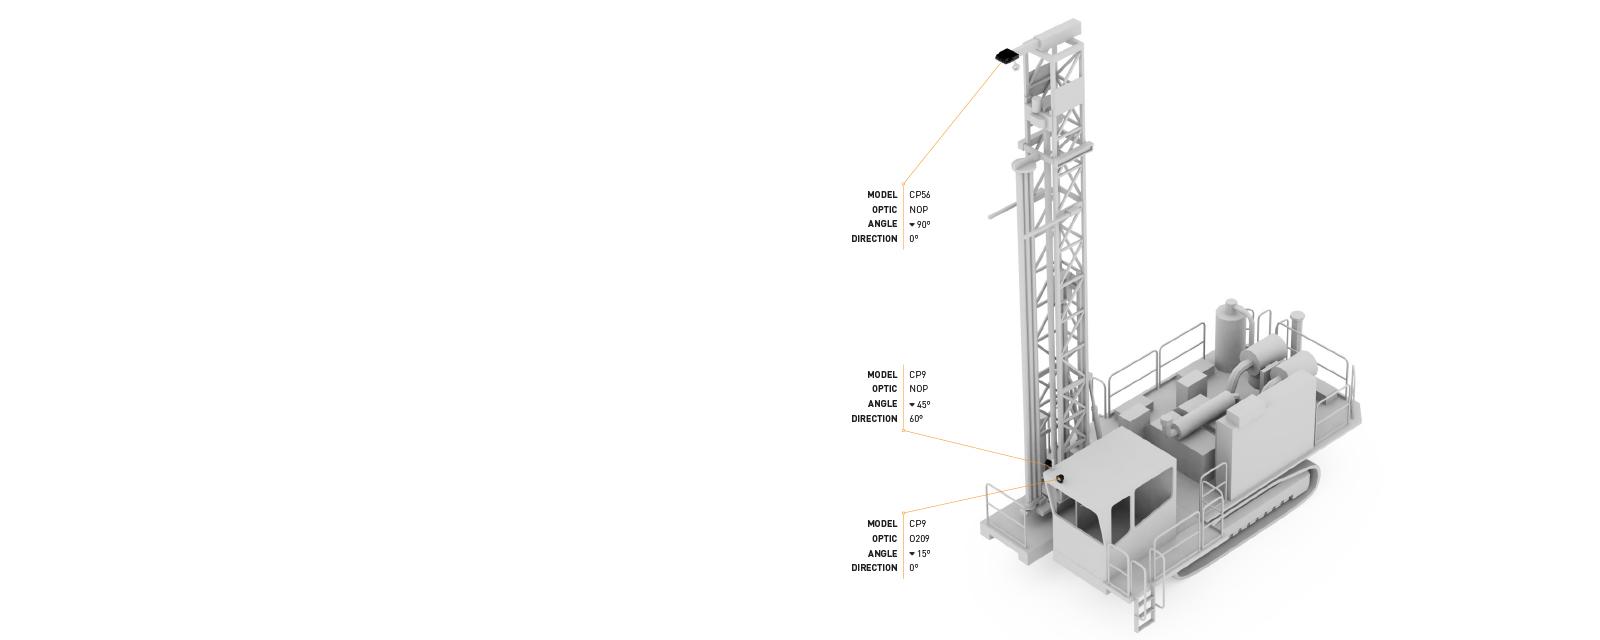 We made this Lighting Design Simulation Report to illustrate how Coolon CP9 and CP56 LED Floodlights improve the light output of an Atlas Copco DM45 blasthole drill.